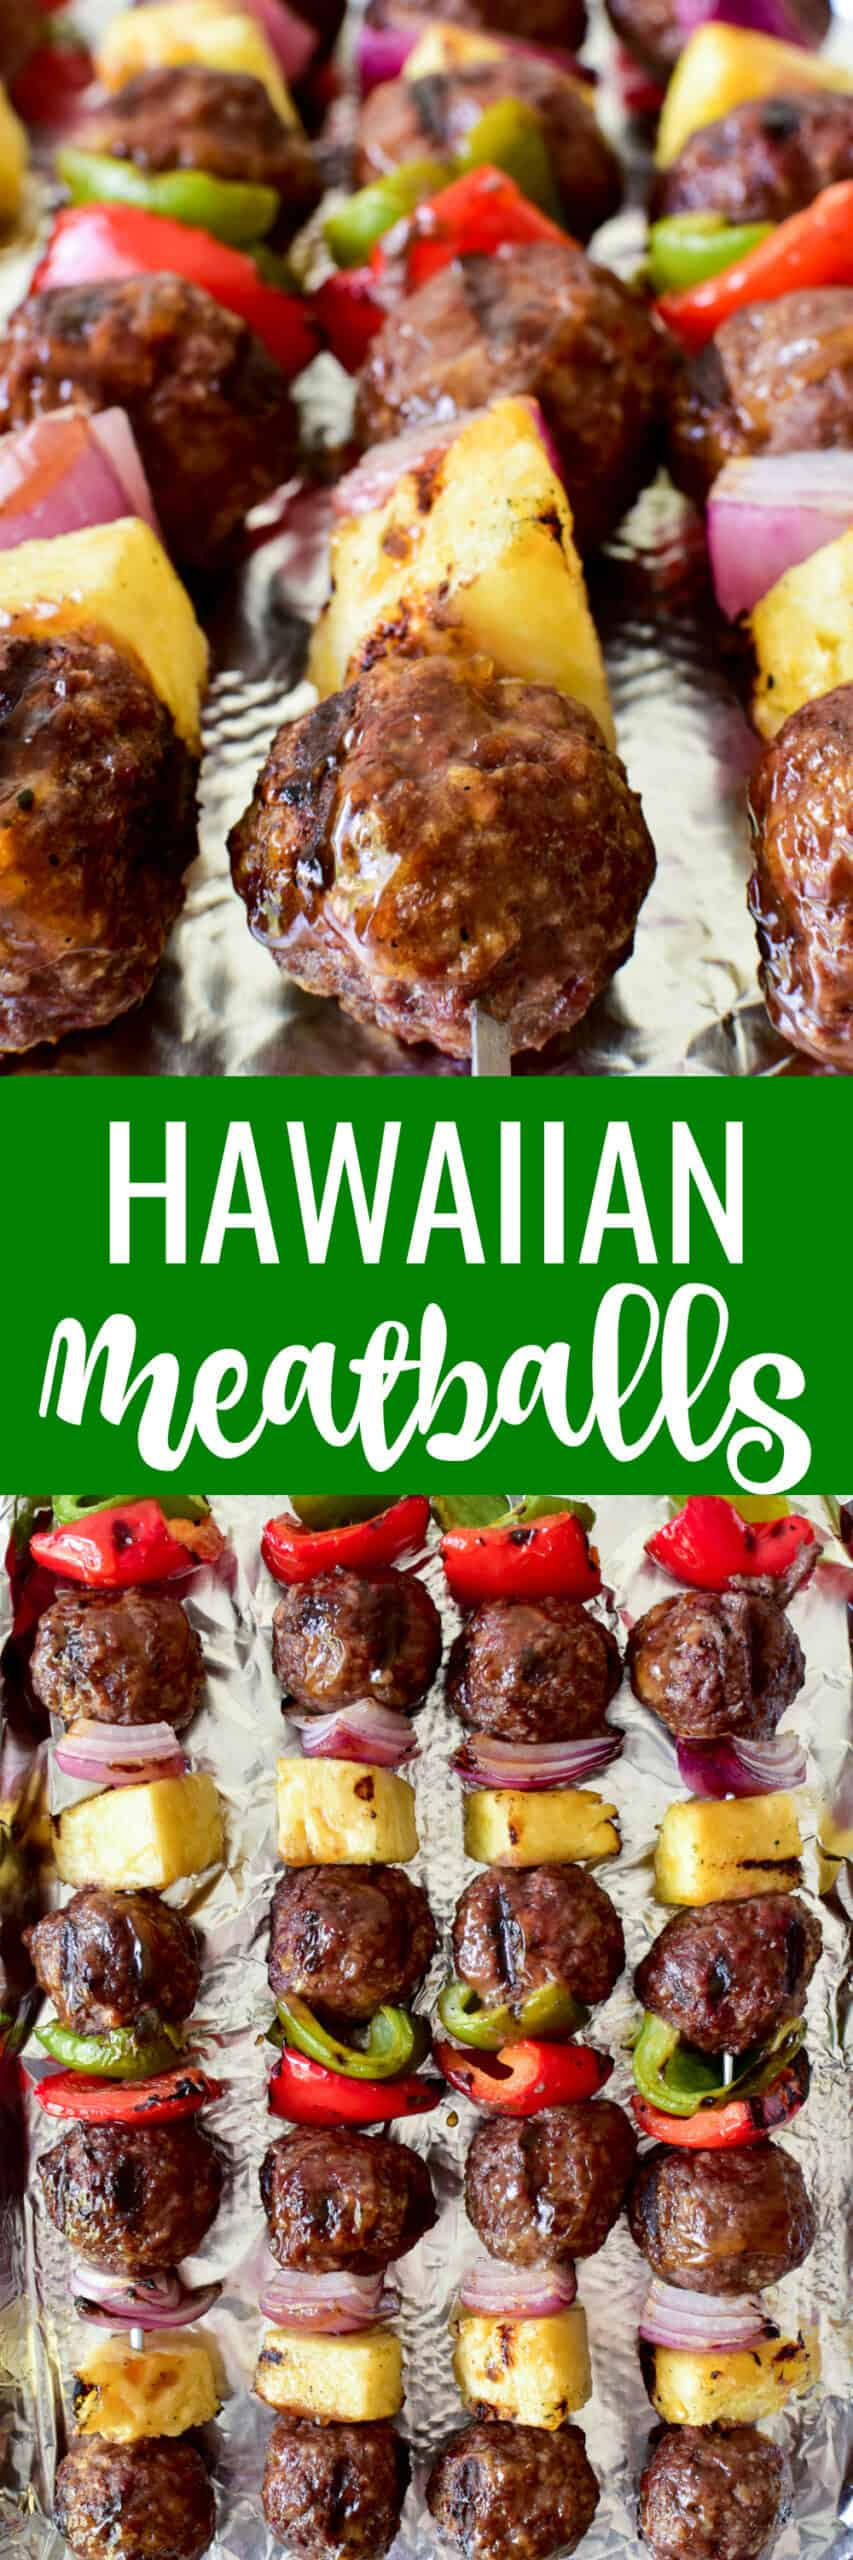 Collage image of Hawaiian Meatballs